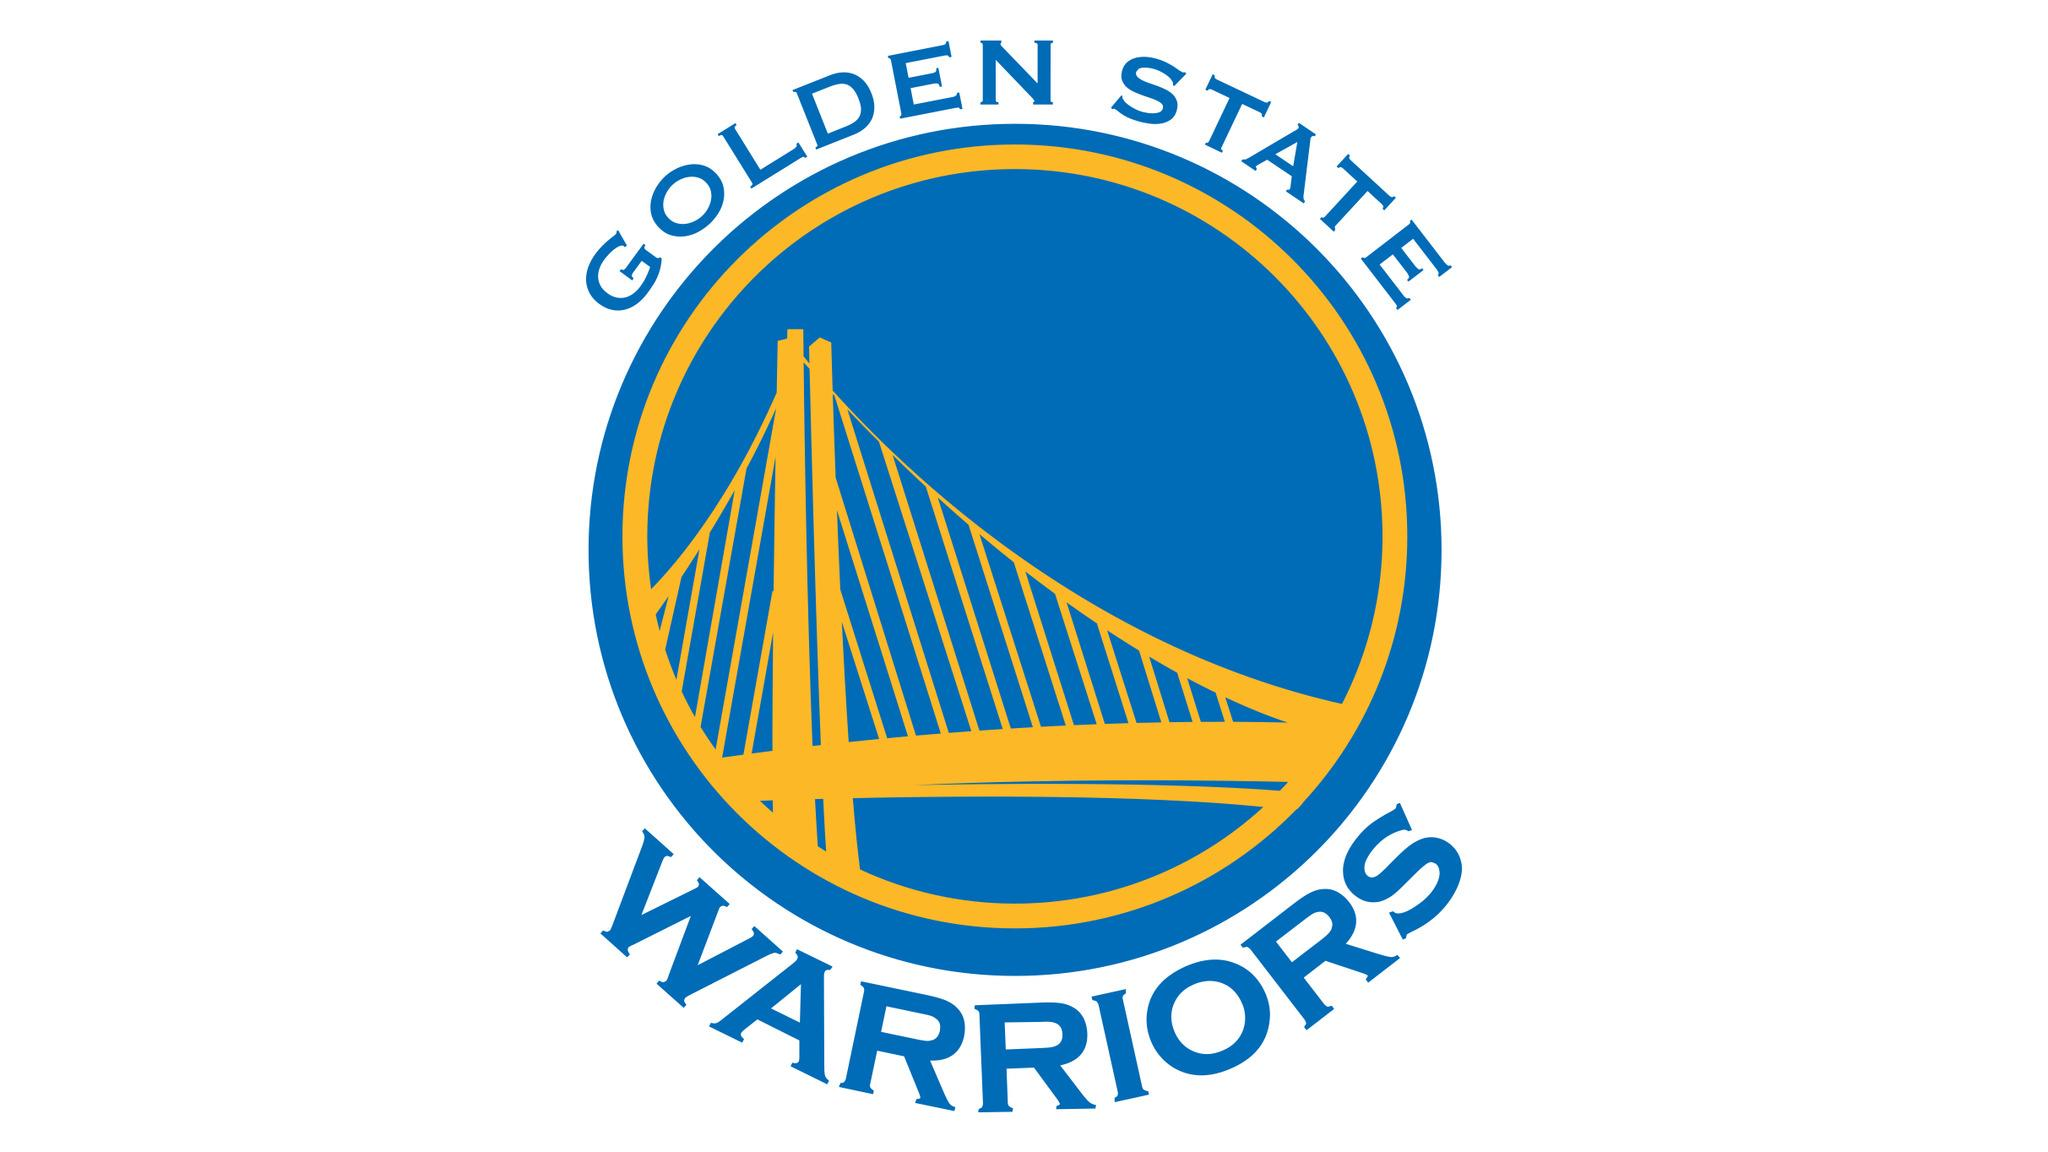 Golden State Warriors vs. Philadelphia 76ers - Oakland, CA 94621